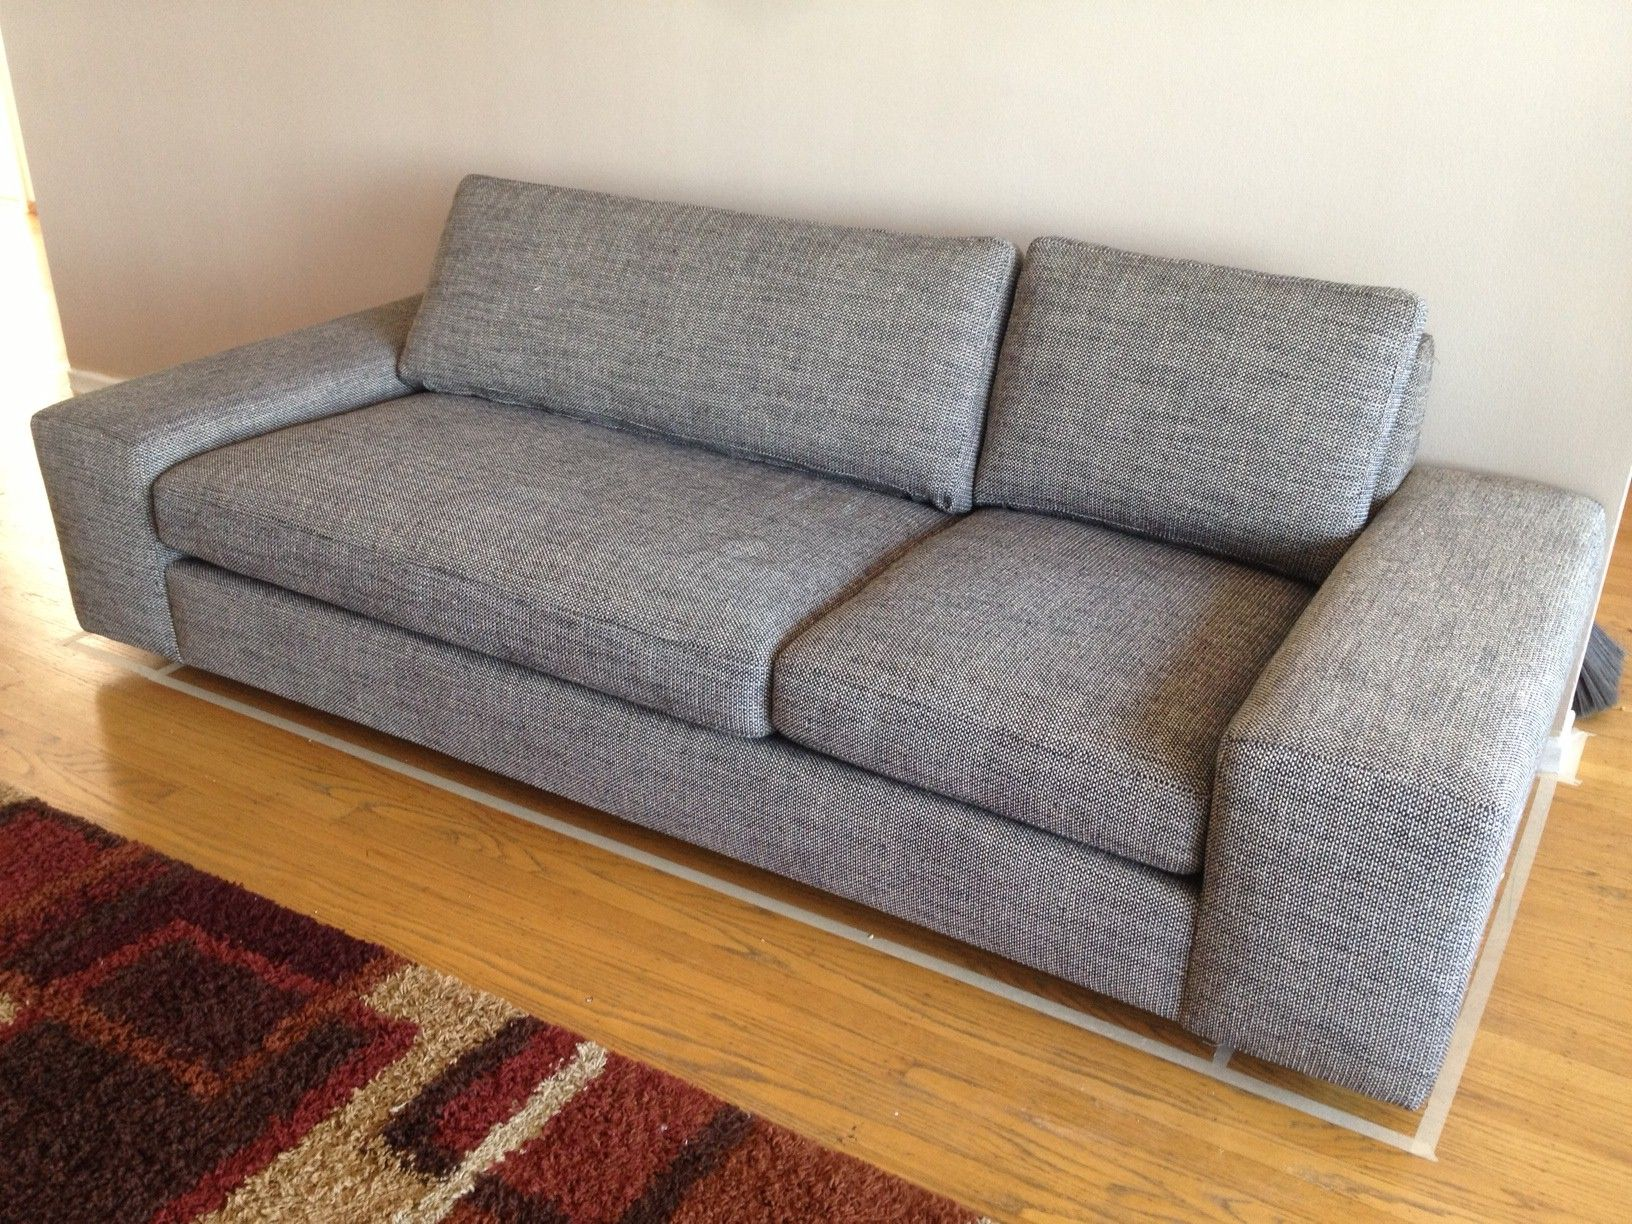 MONARCH SOFAS Custom Sofa Or Sectional. ANY SIZE. Leather Or Fabric. Ships  Nationwide. Showrooms In Los Angeles, Orange County, Bay Area, Dallas.